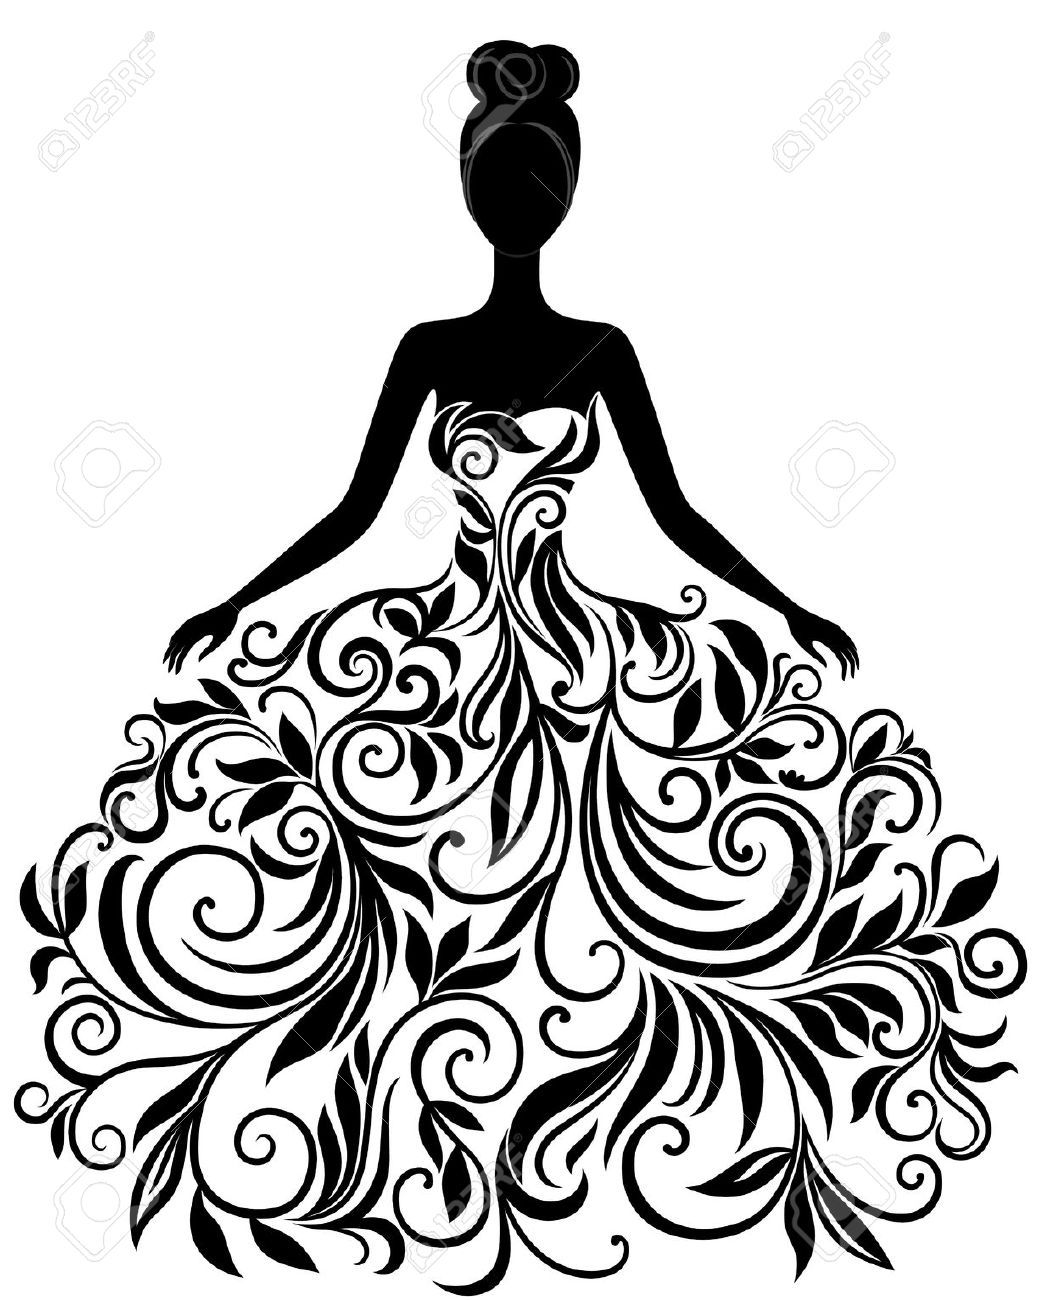 Free Clipart Woman Silhouette